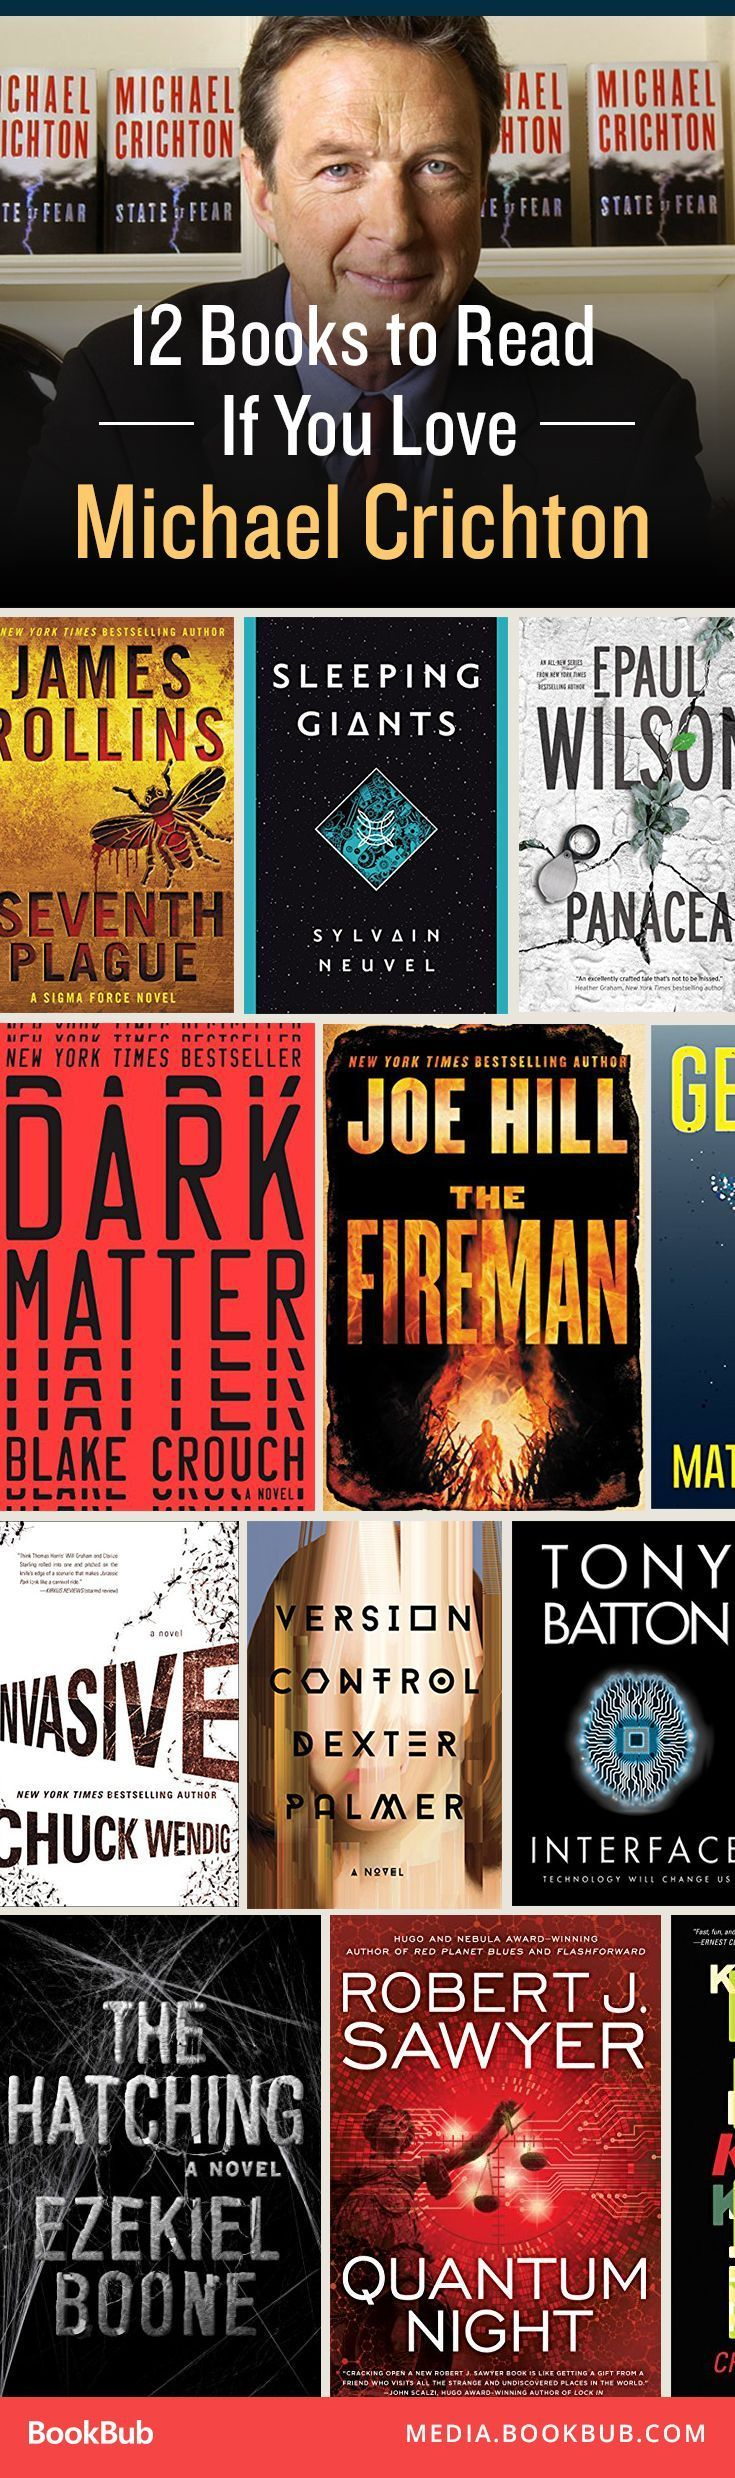 12 books worth a read if you love Michael Crichton, including fast-paced, twisty, science-fiction thrillers.